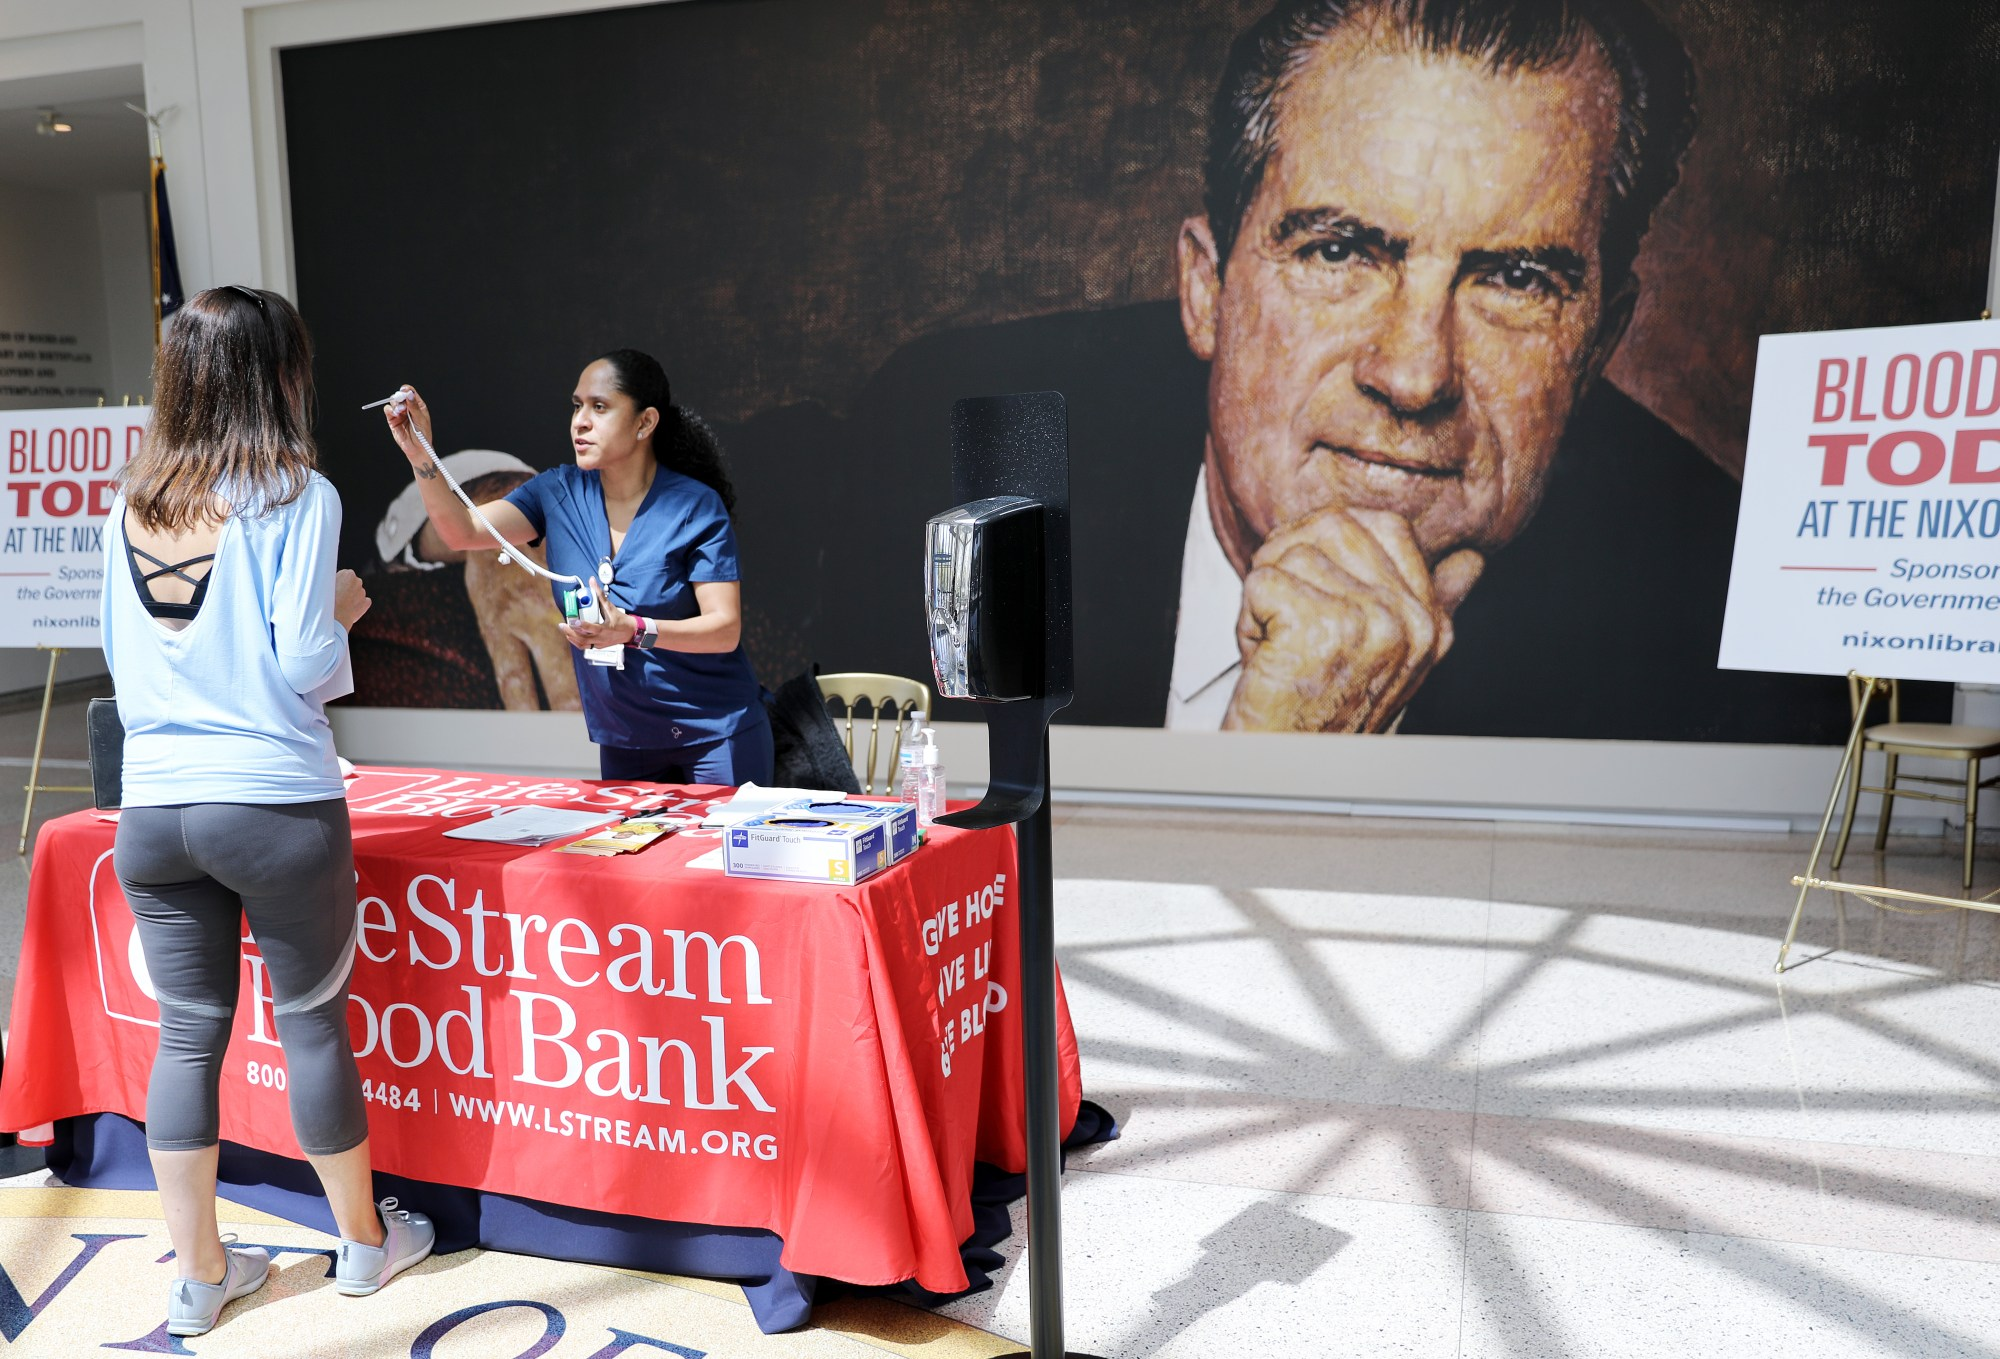 A nurse checks the temperature of a potential donor during a blood drive at the Richard Nixon Presidential Library in Yorba Linda on March 30, 2020. (Mario Tama/Getty Images)